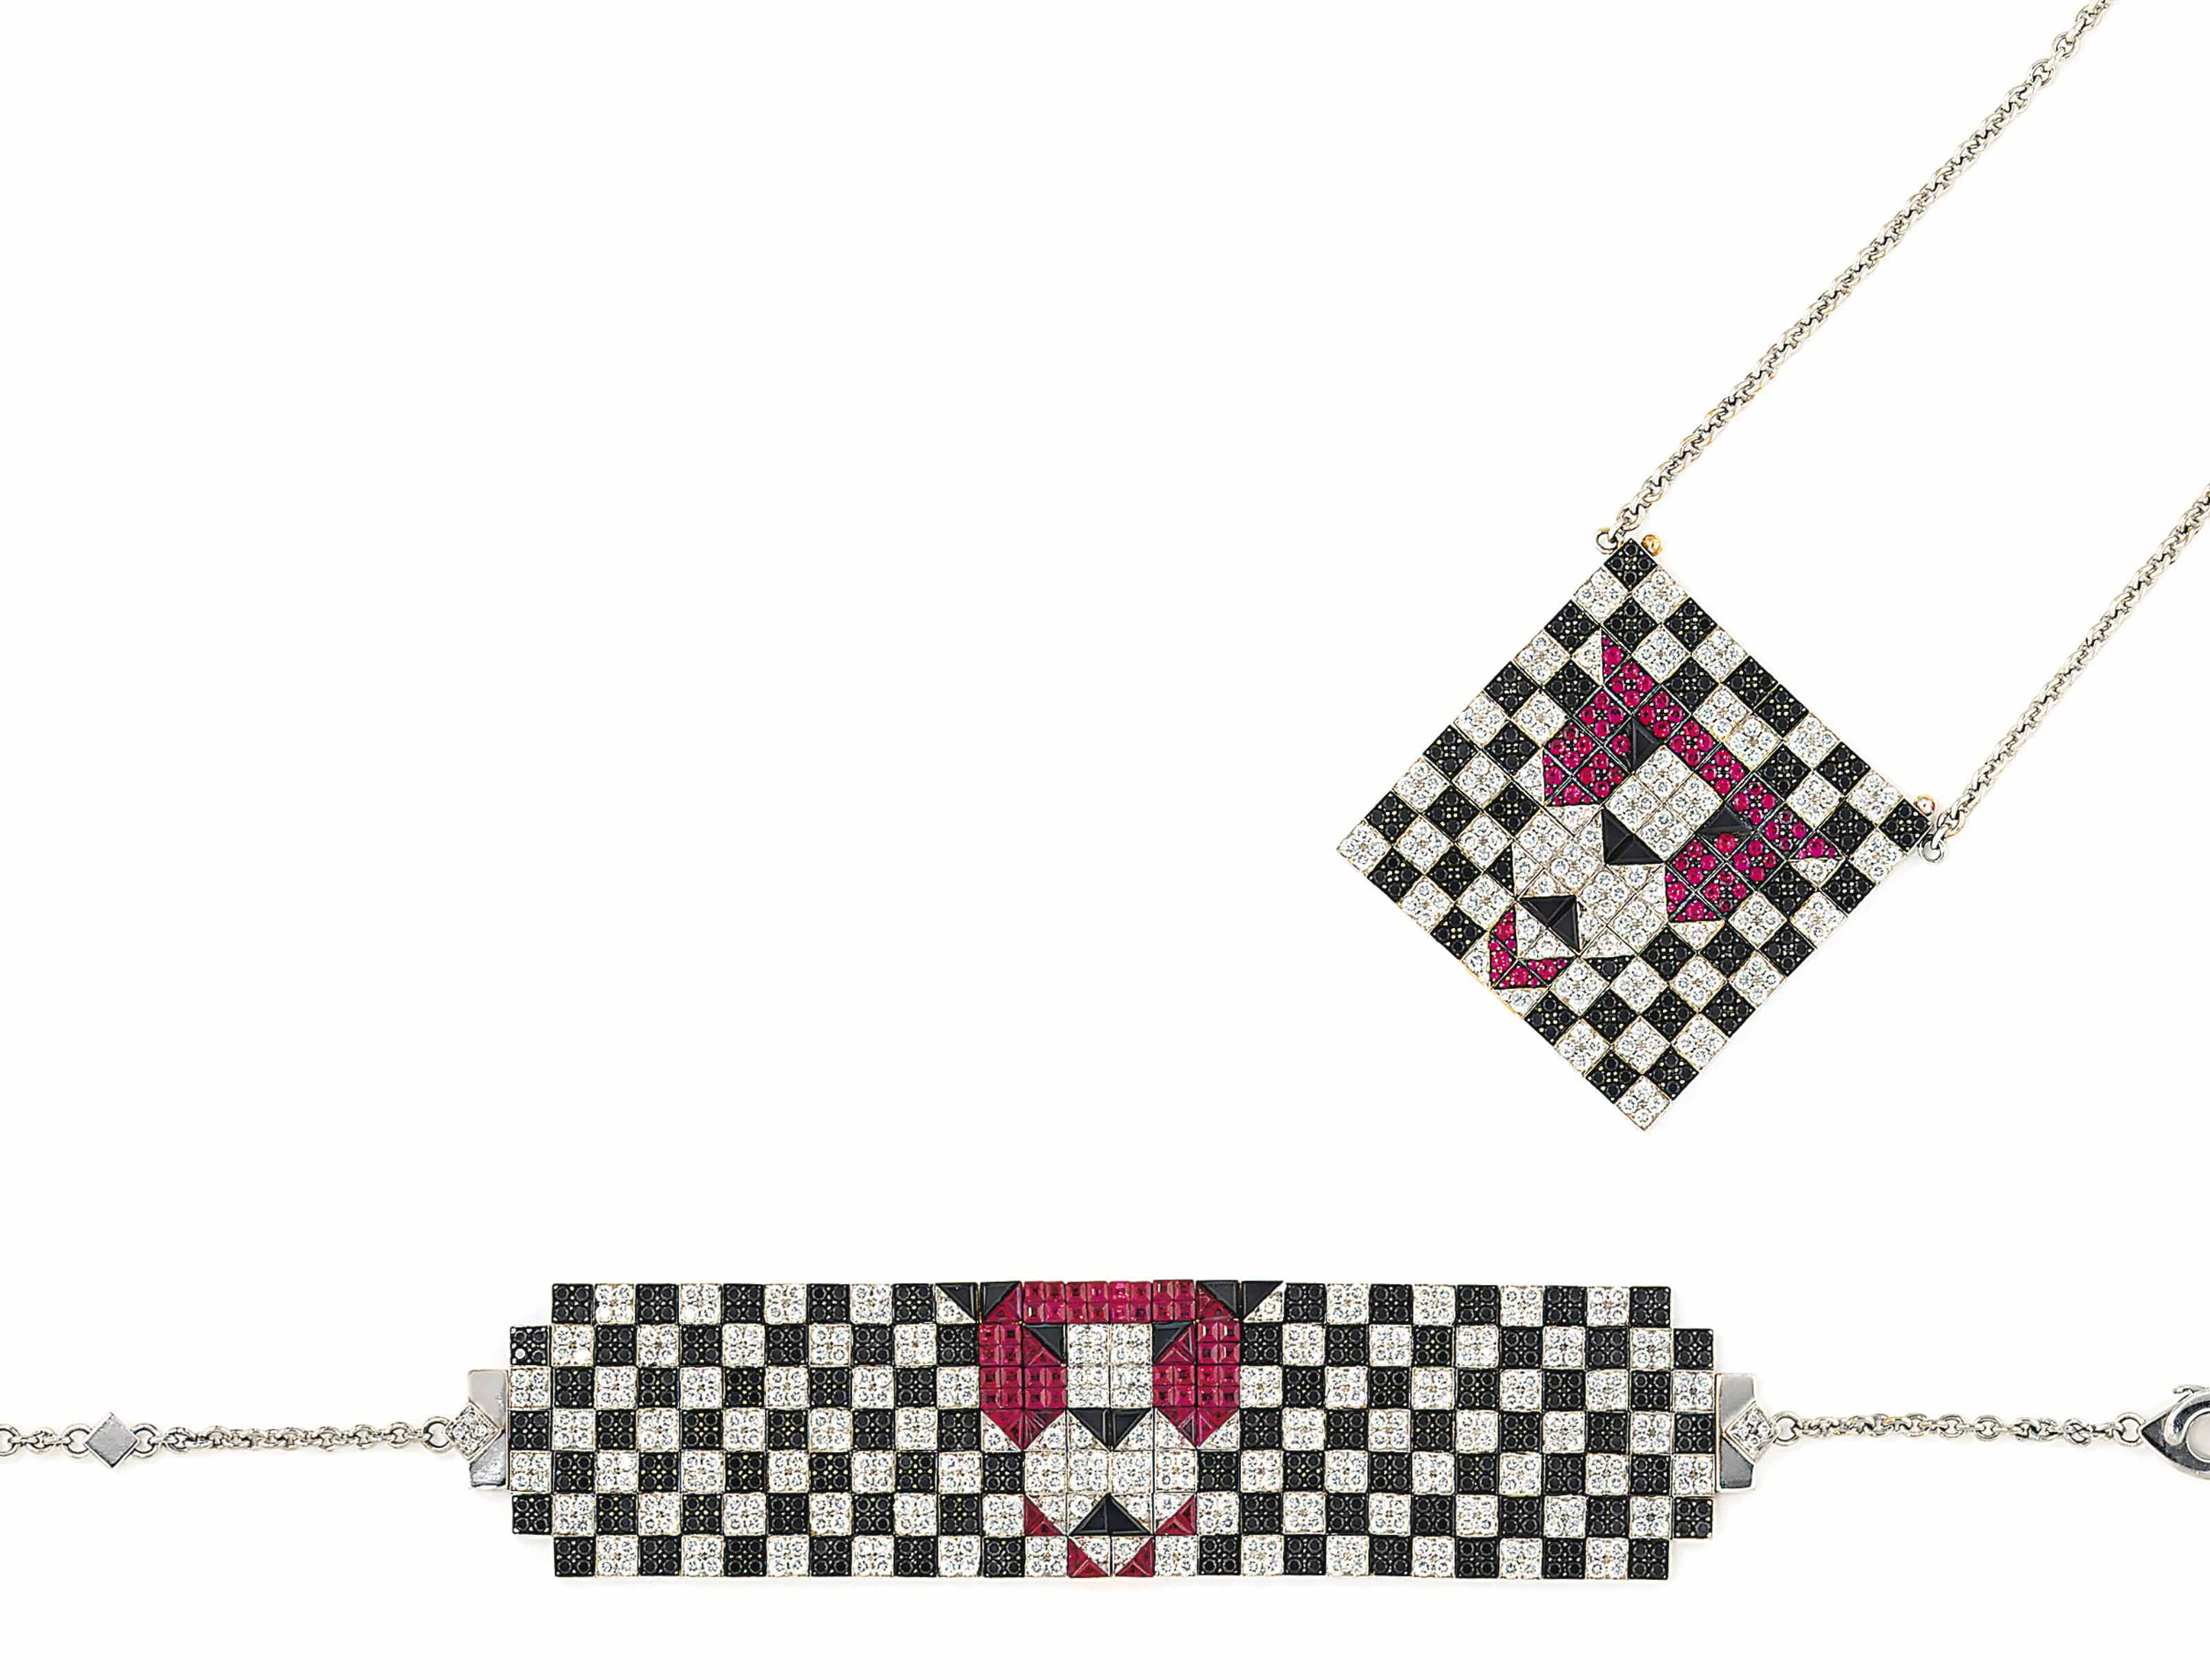 A RUBY AND DIAMOND-SET 'LION' BRACELET AND PENDANT SUITE, BY ENIGMA